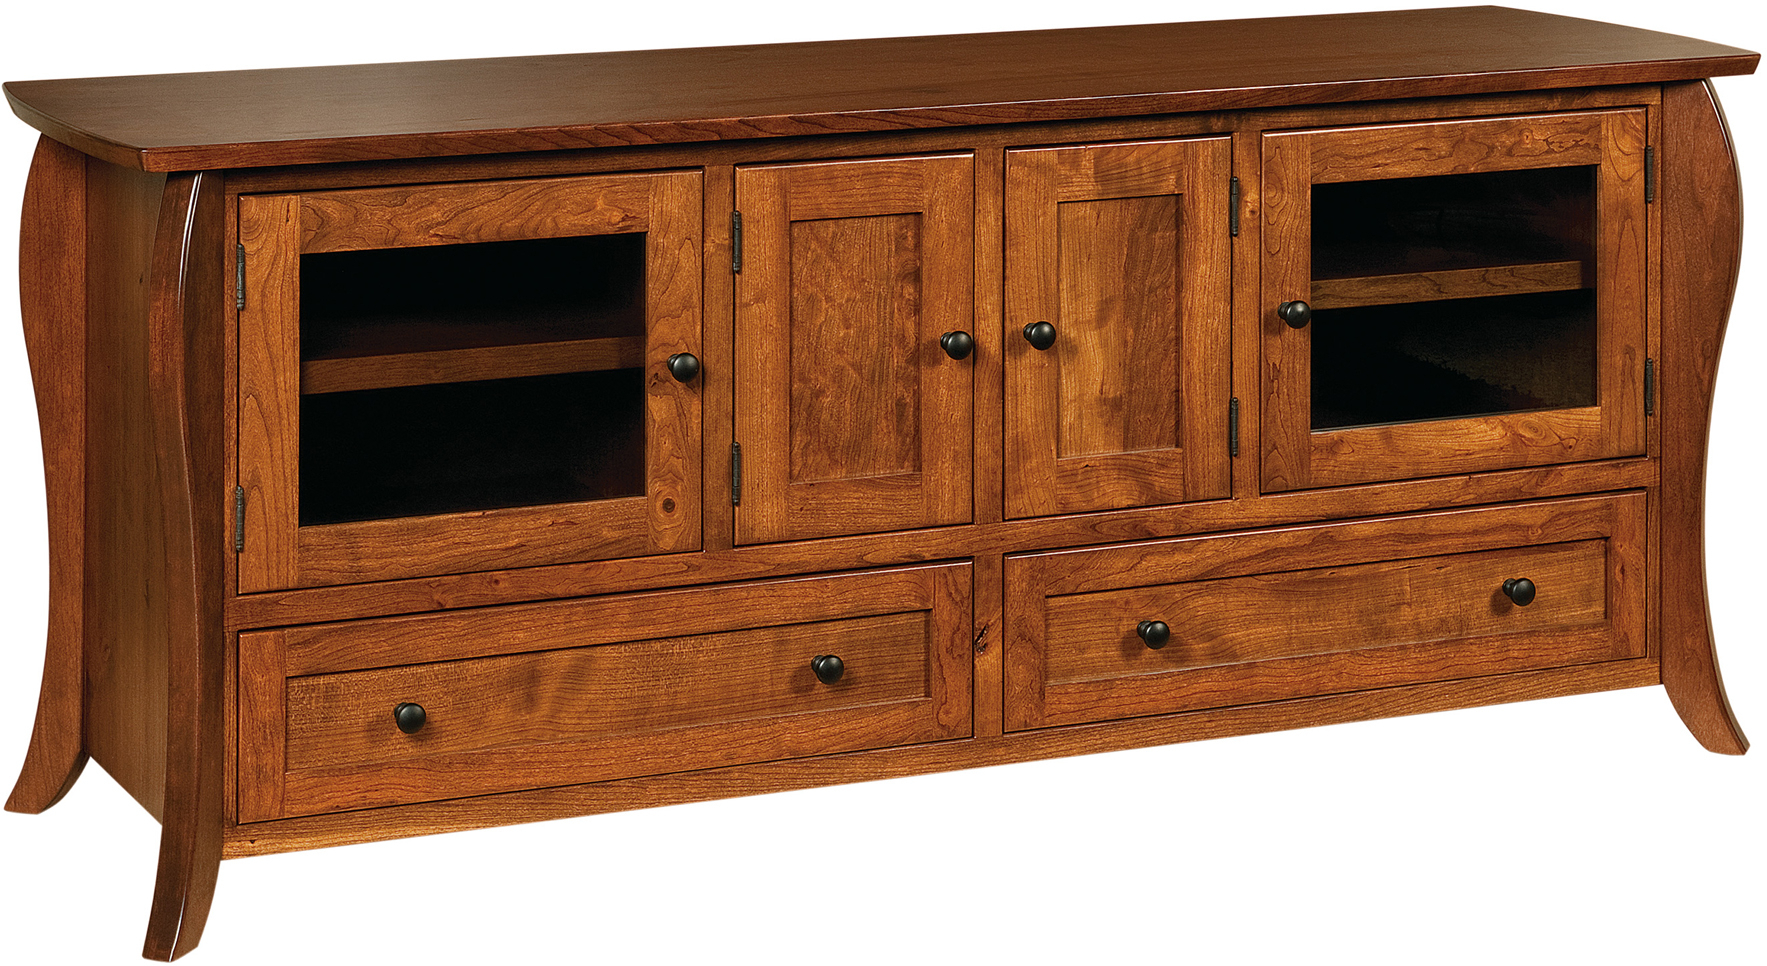 Quincy Tv Cabinets | Custom Amish Quincy Tv Stands Inside Maple Tv Cabinets (View 5 of 15)